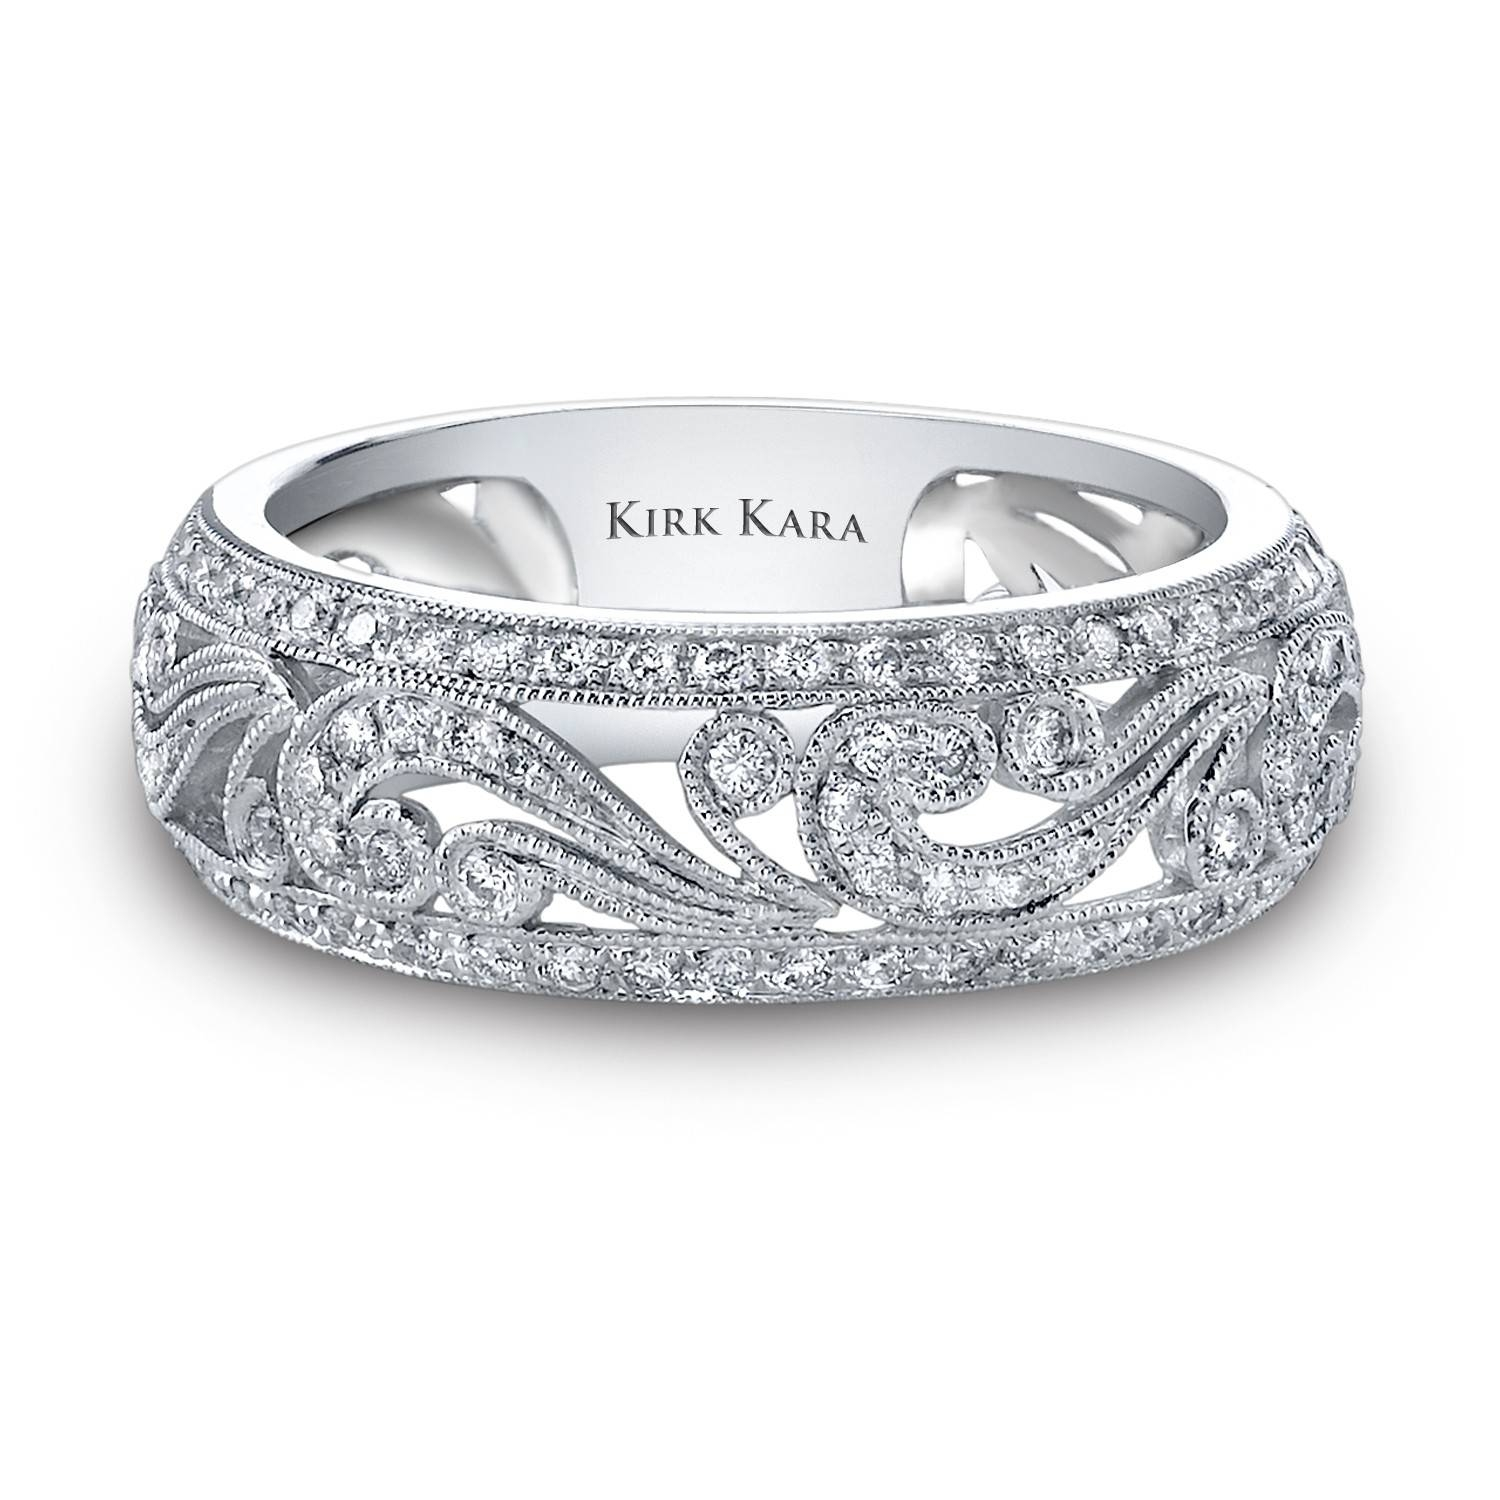 Engraved Wedding Rings For Women | Lake Side Corrals Inside Unique Womens Wedding Bands (View 5 of 15)